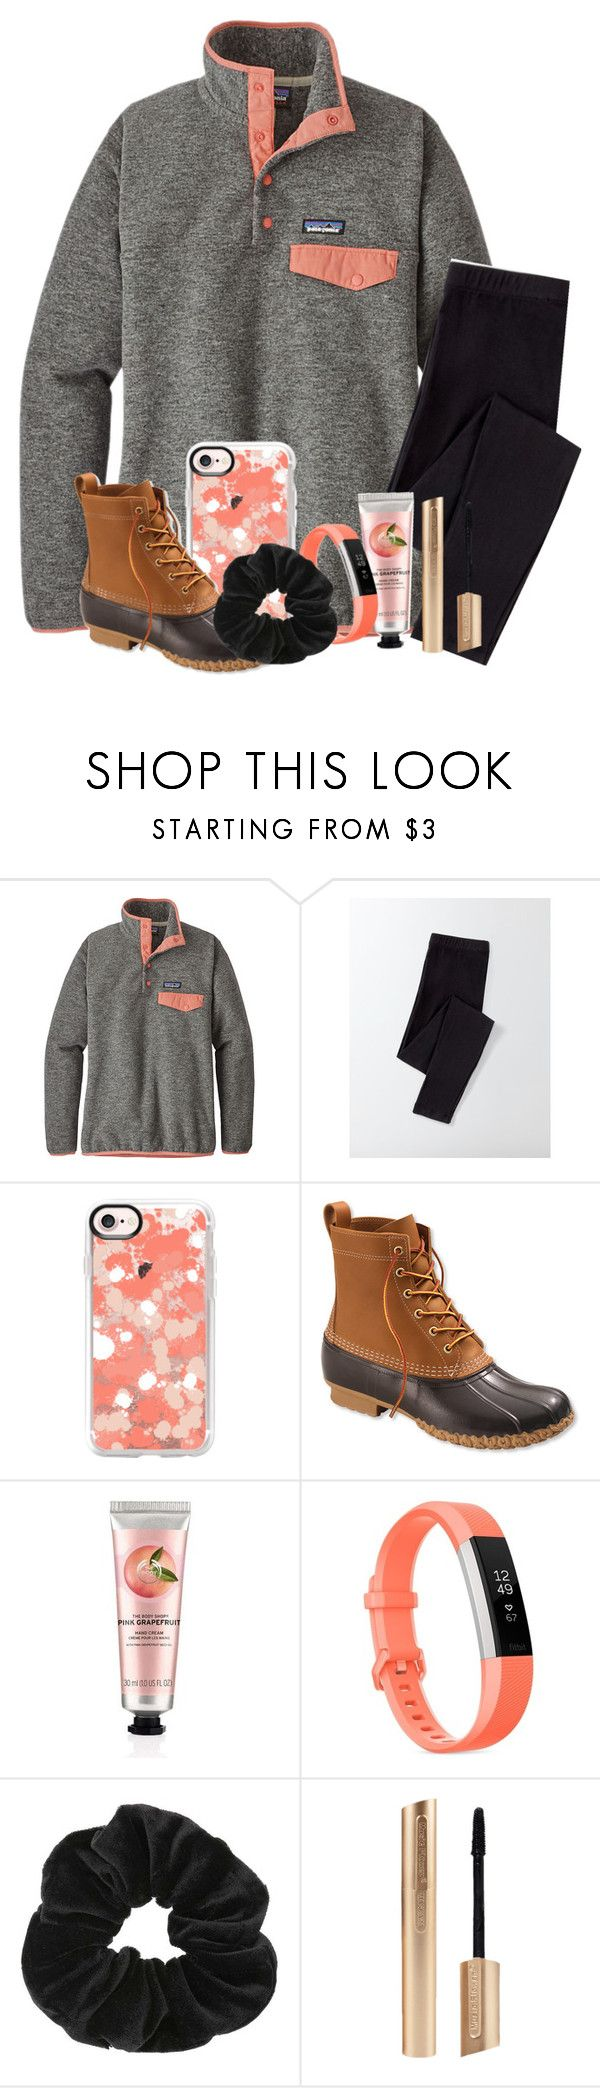 """Preppy girl"" by marymartinsonn ❤ liked on Polyvore featuring Patagonia, Boden, Casetify, L.L.Bean, The Body Shop, Fitbit and Miss Selfridge"